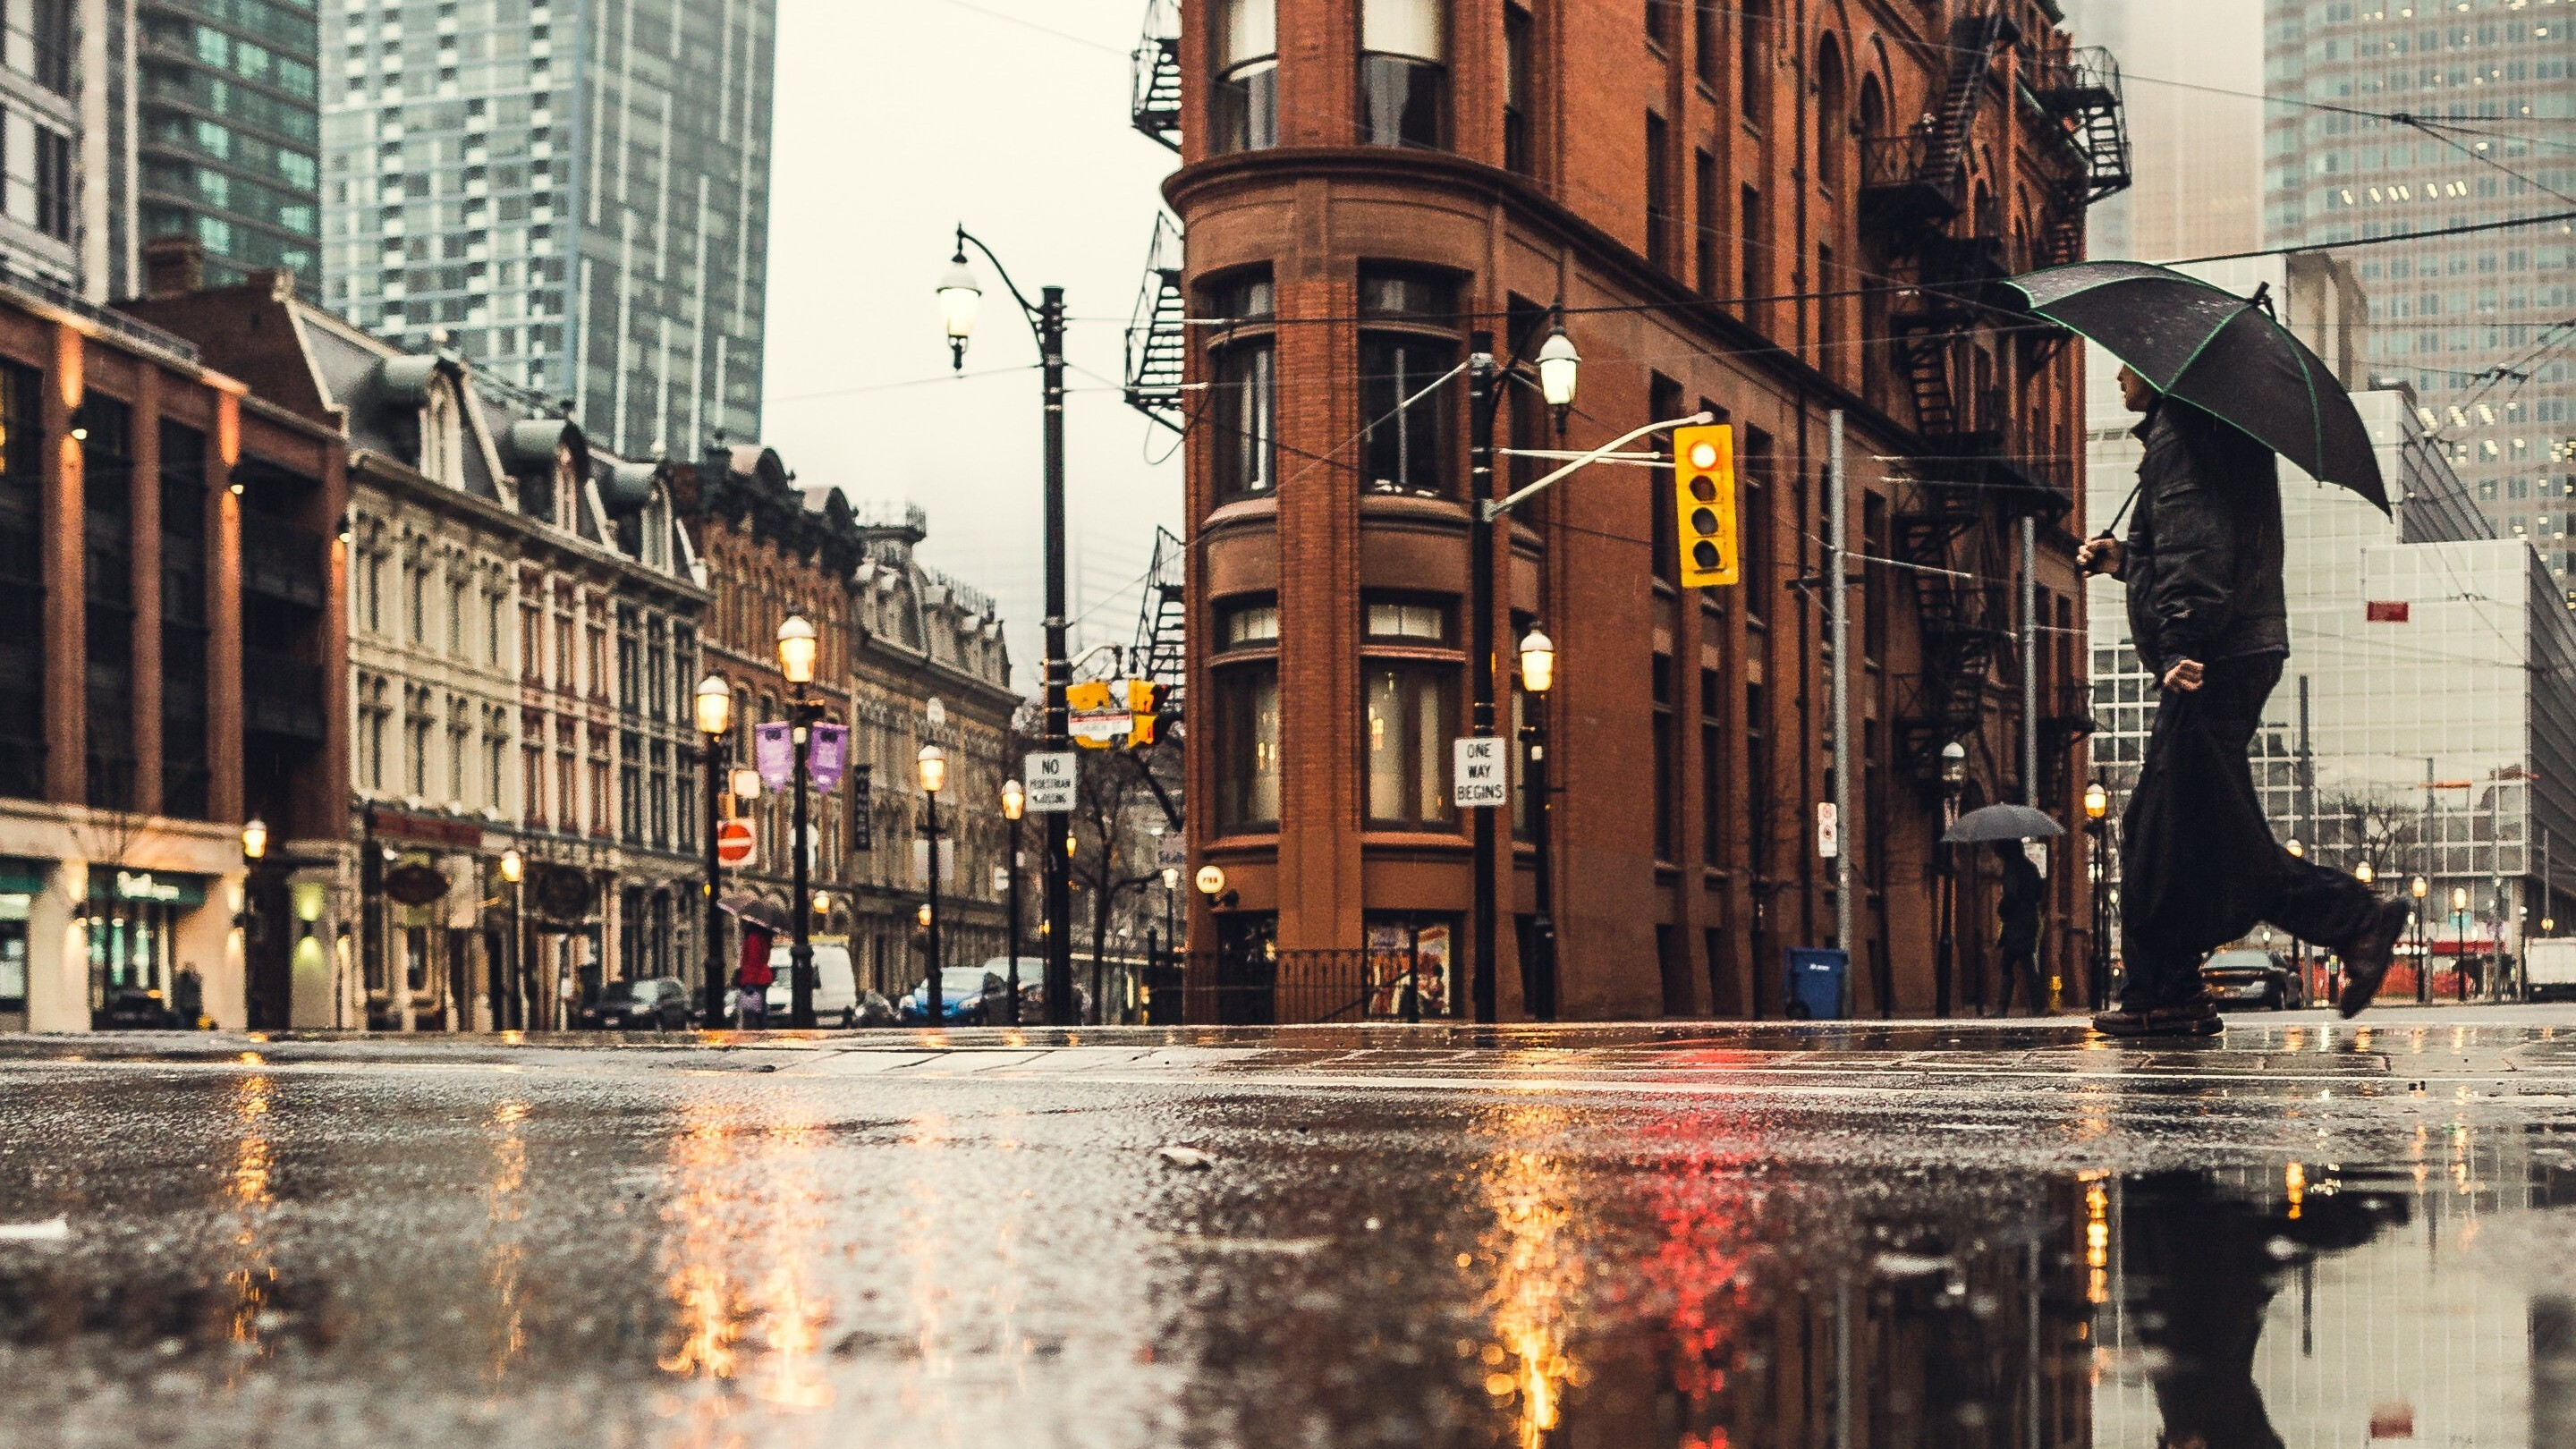 London Street During Rain Hd Images Hd Wallpapers